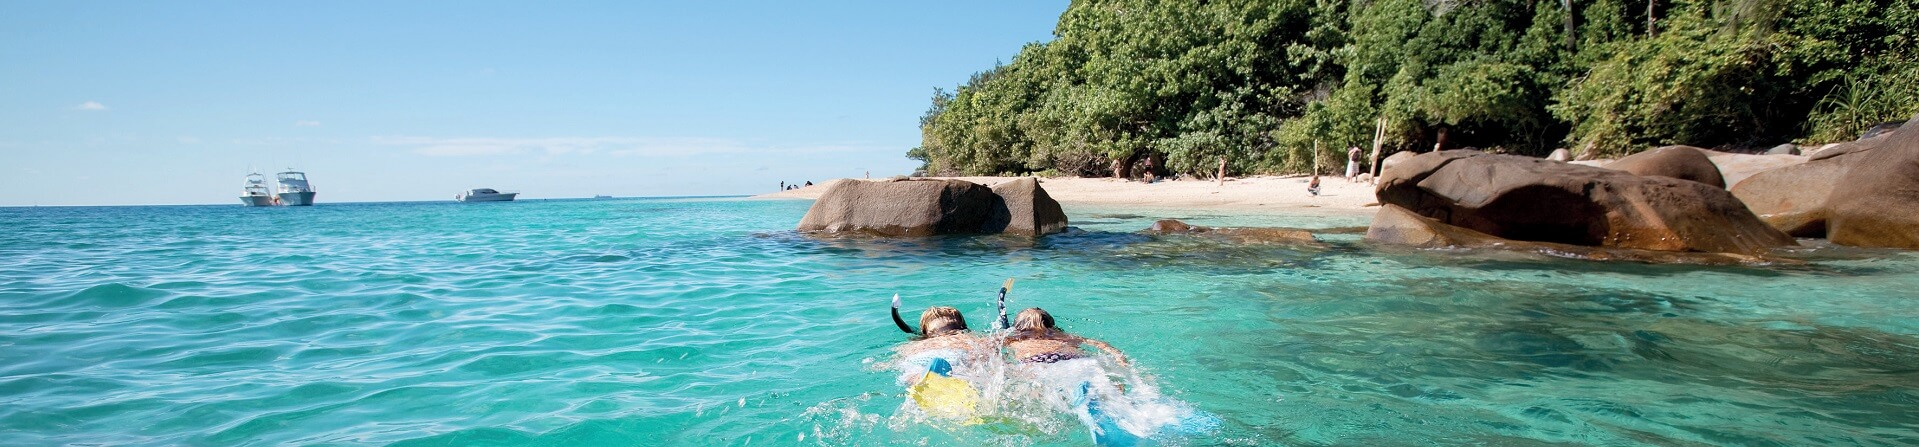 Is it safe to swim at Fitzroy Island?